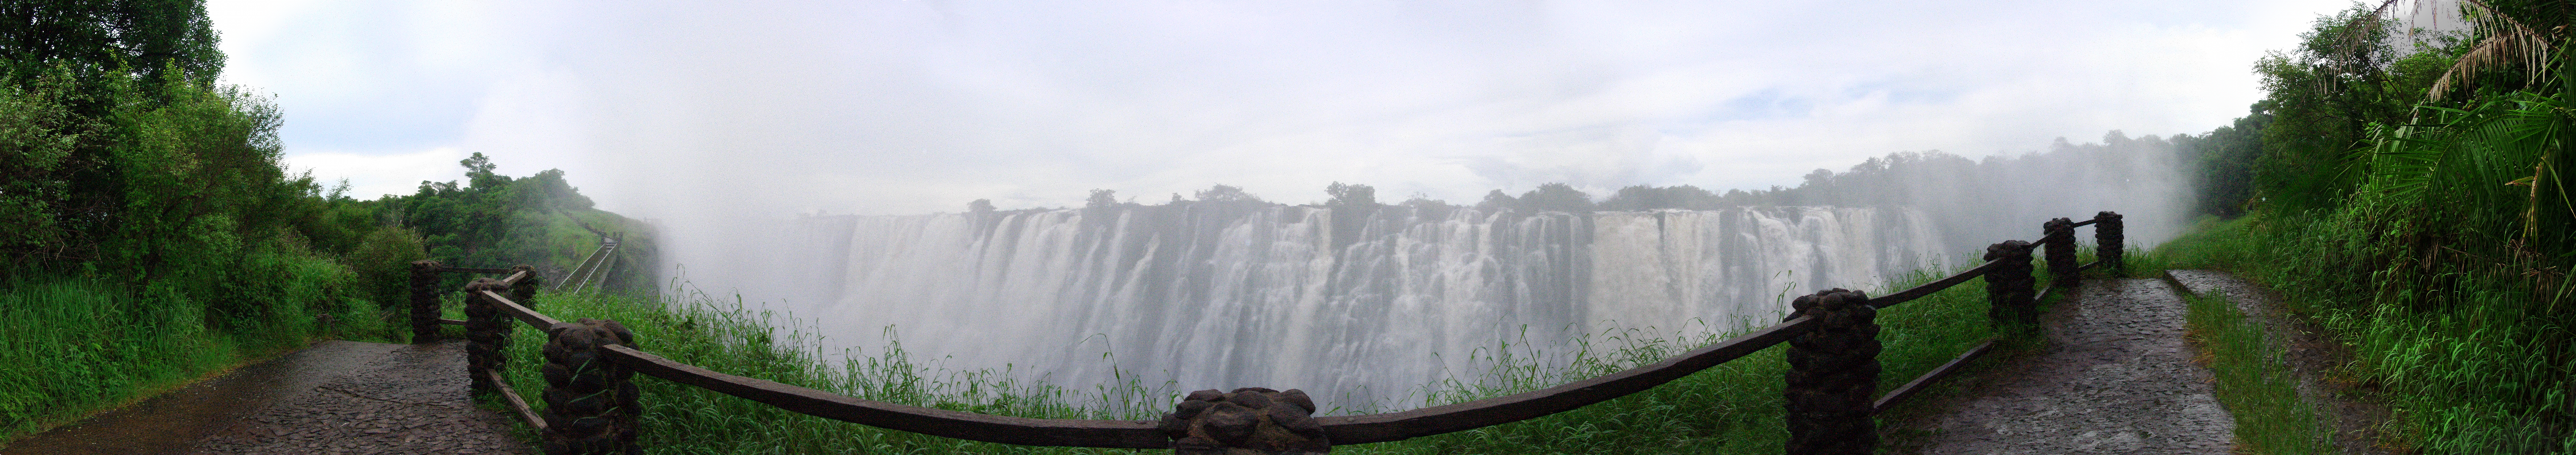 http://upload.wikimedia.org/wikipedia/commons/6/60/Victoria_Falls.png